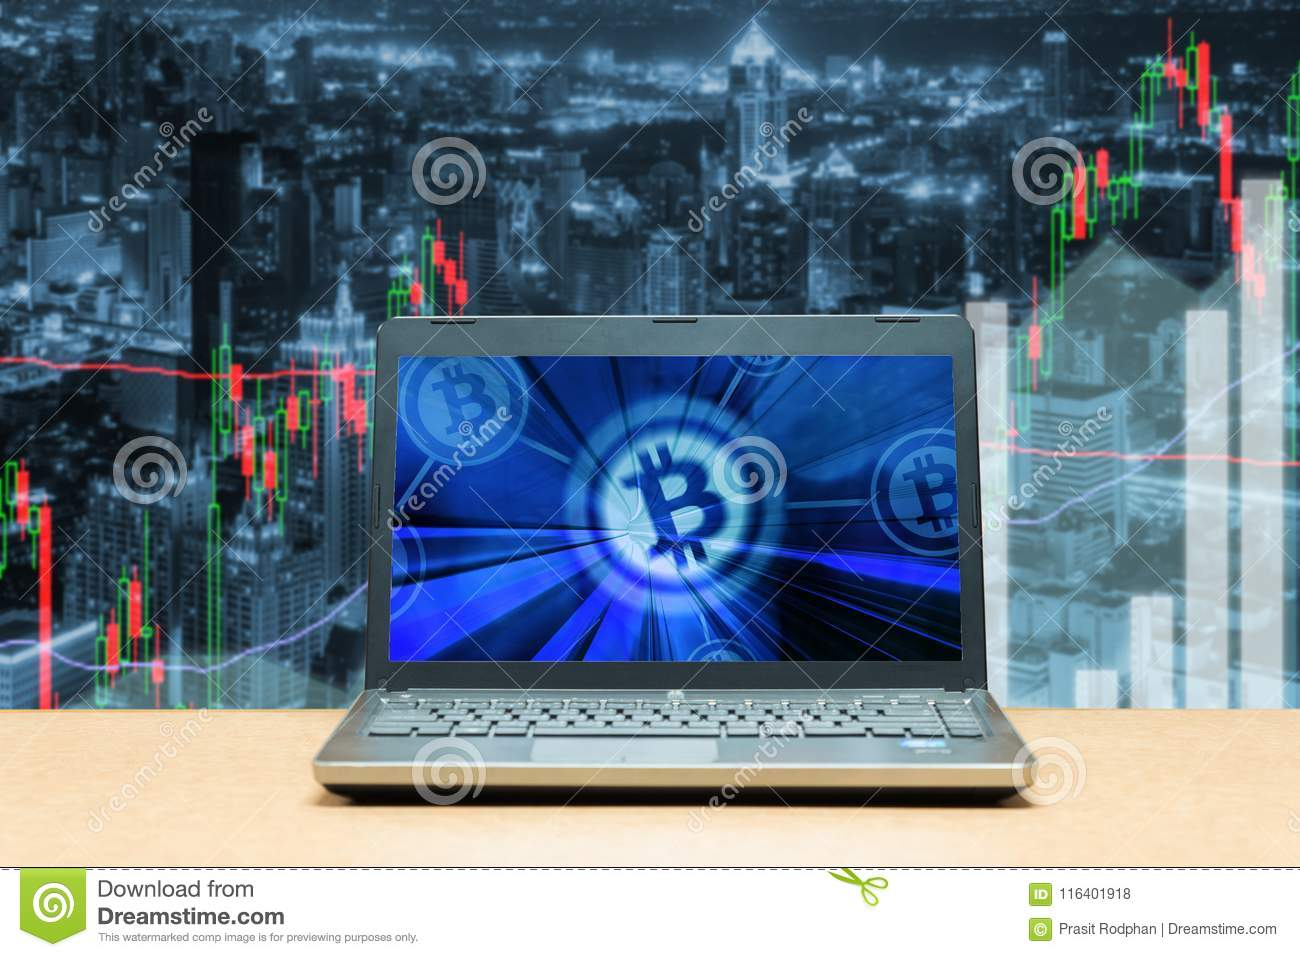 Bitcoin Trading Exchange Stock Market Investment, Forex With